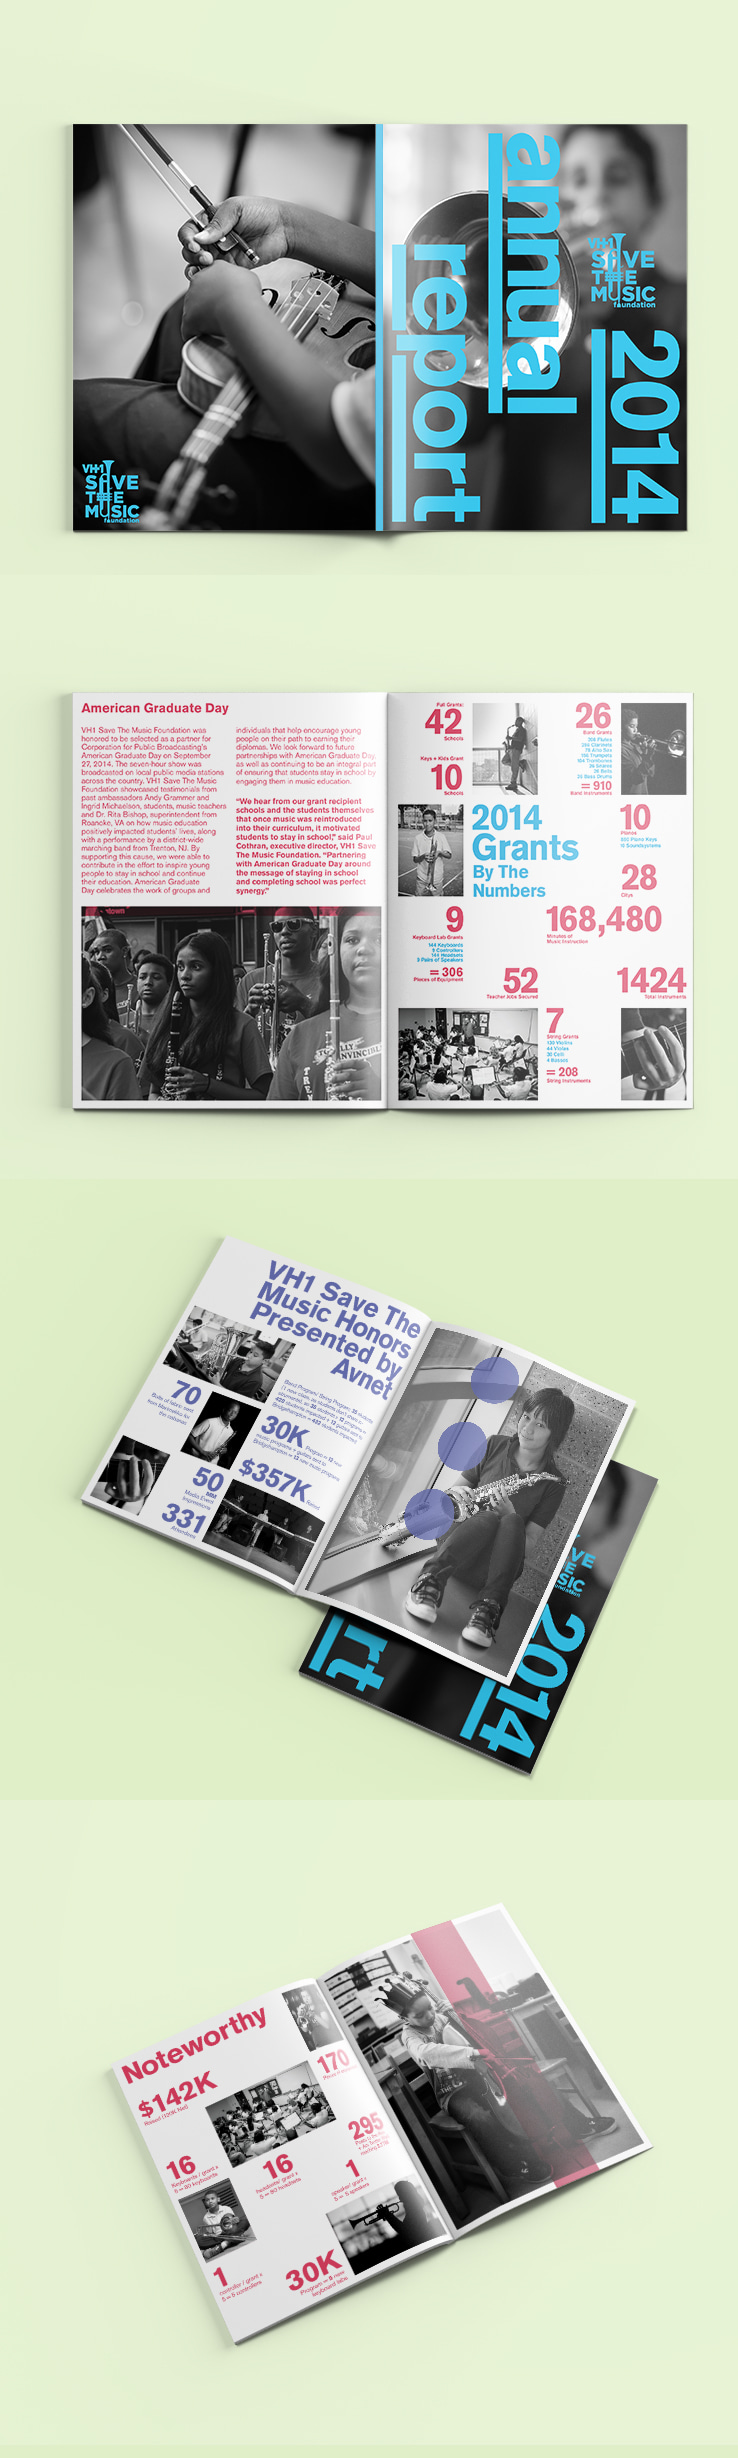 VH1: Save The Music annual report